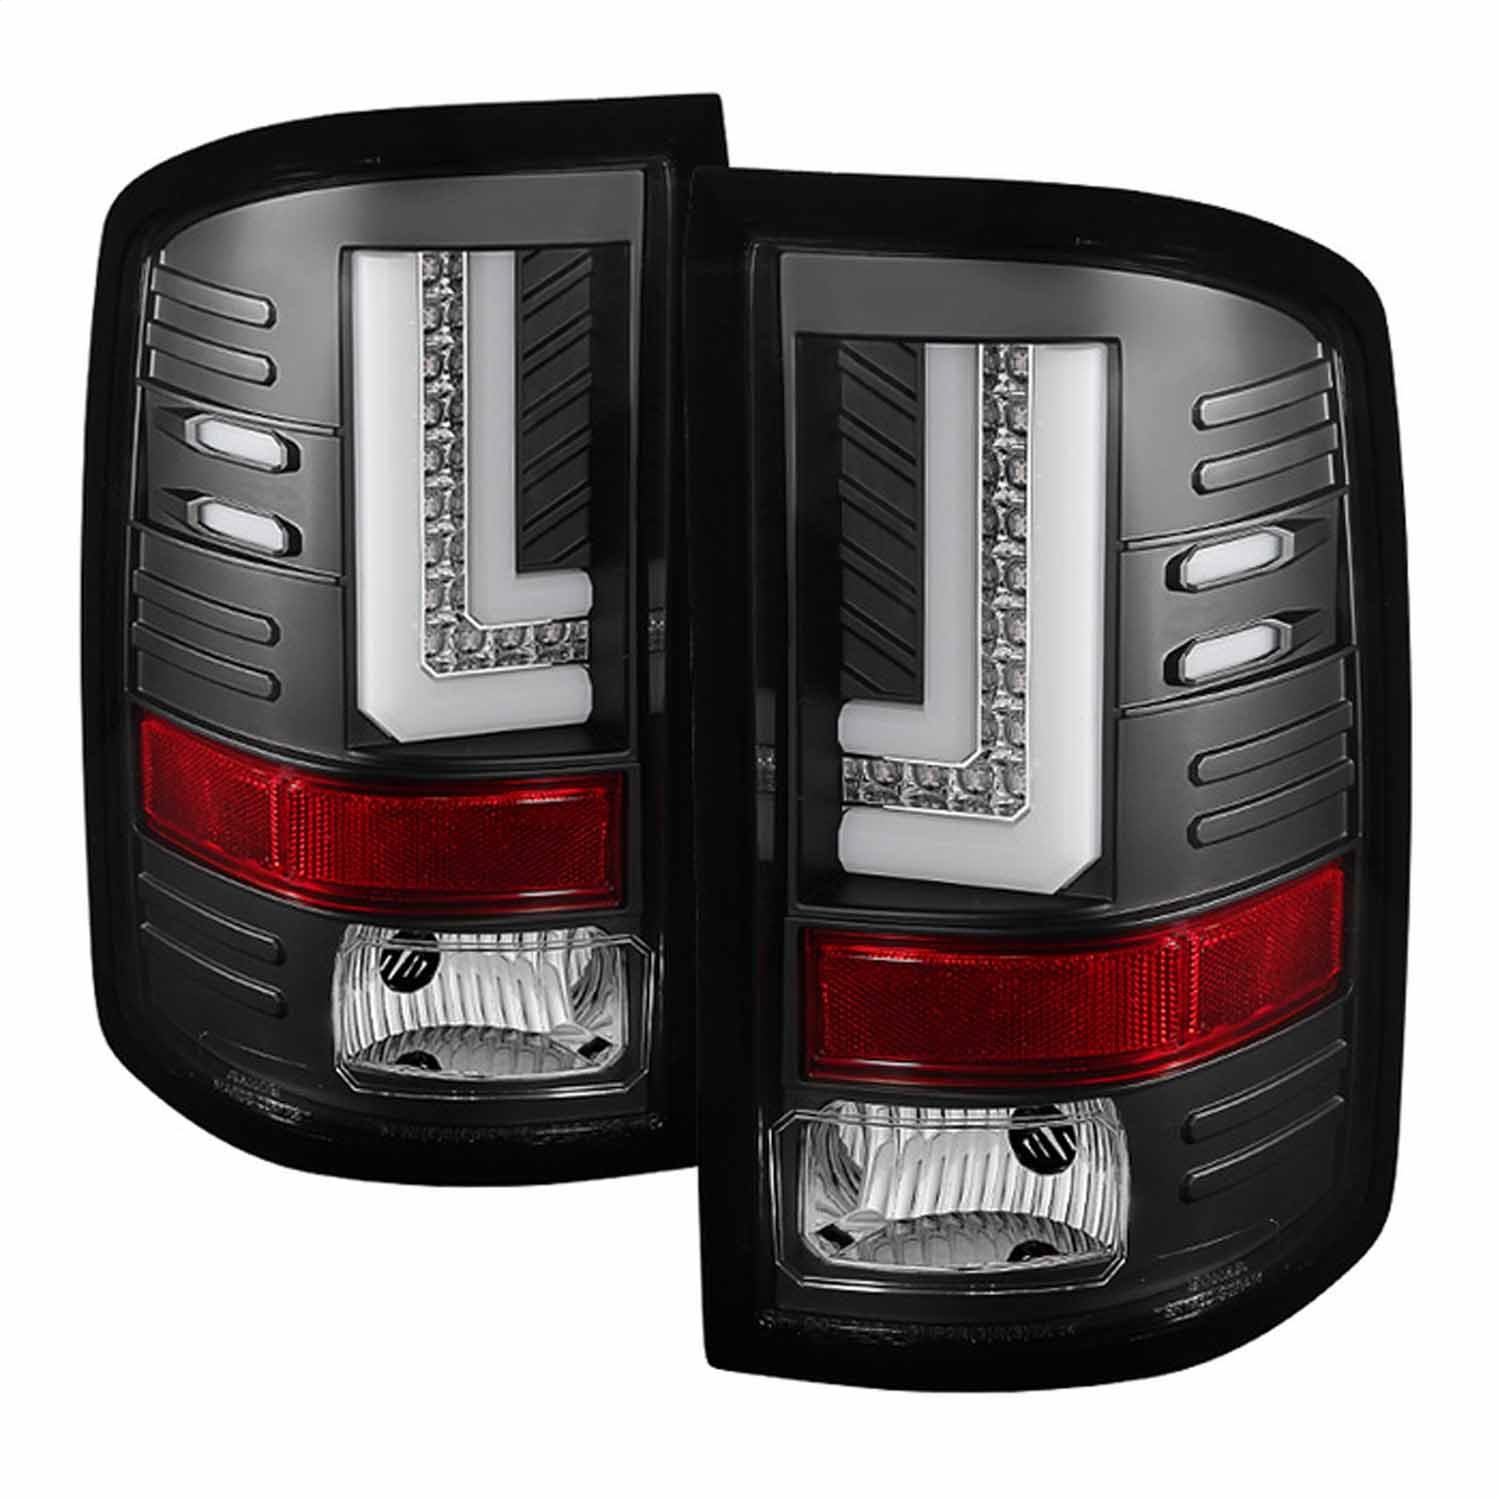 Spyder Auto 5080660 LED Tail Lights